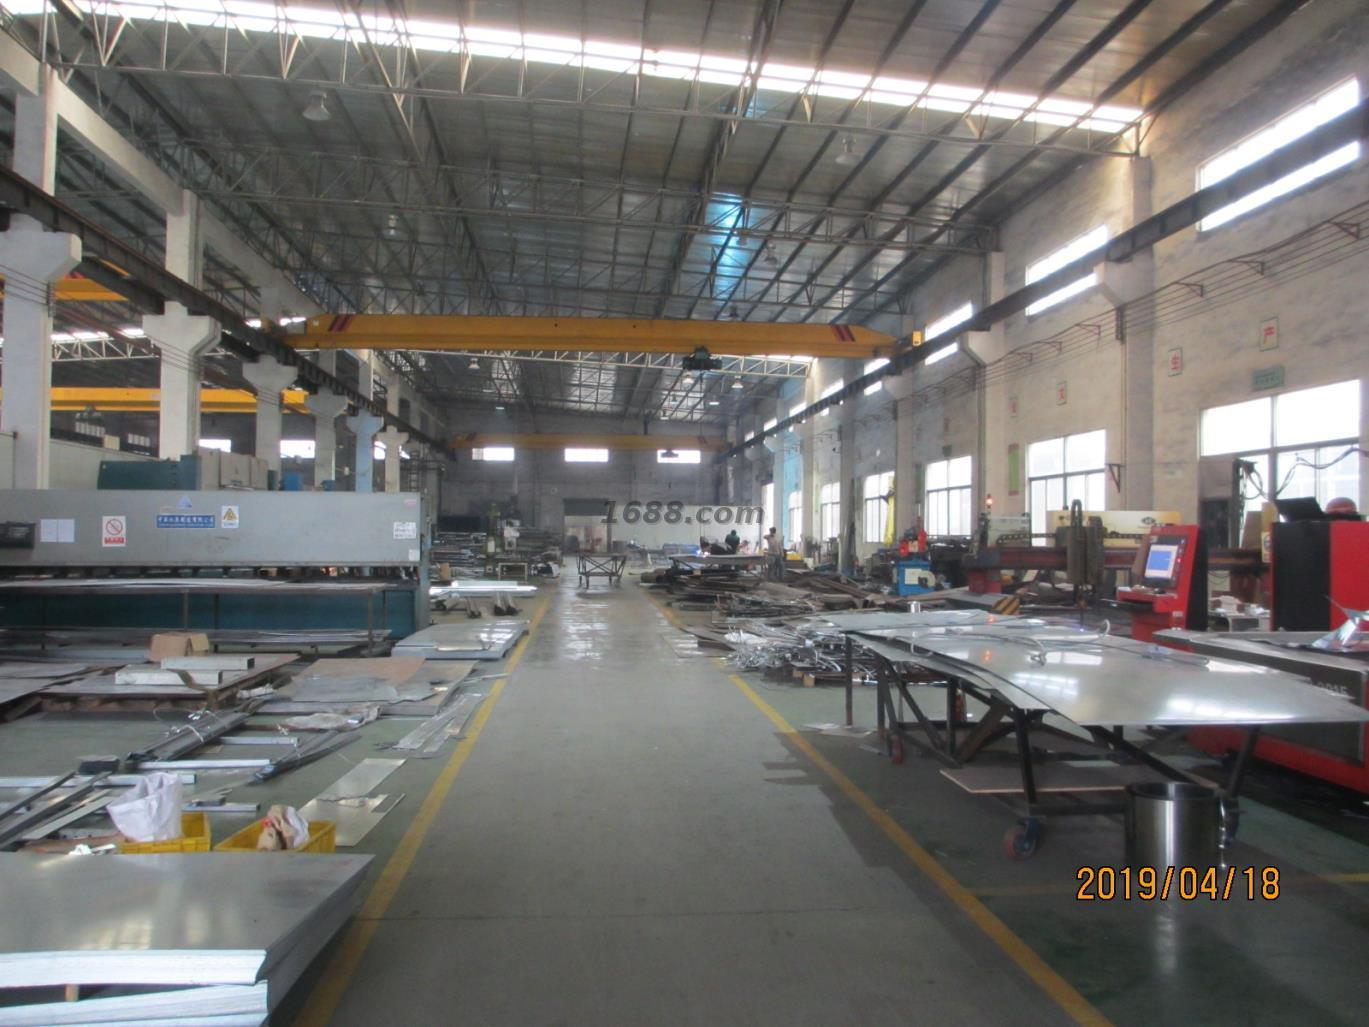 YEROOGROUP's production process display